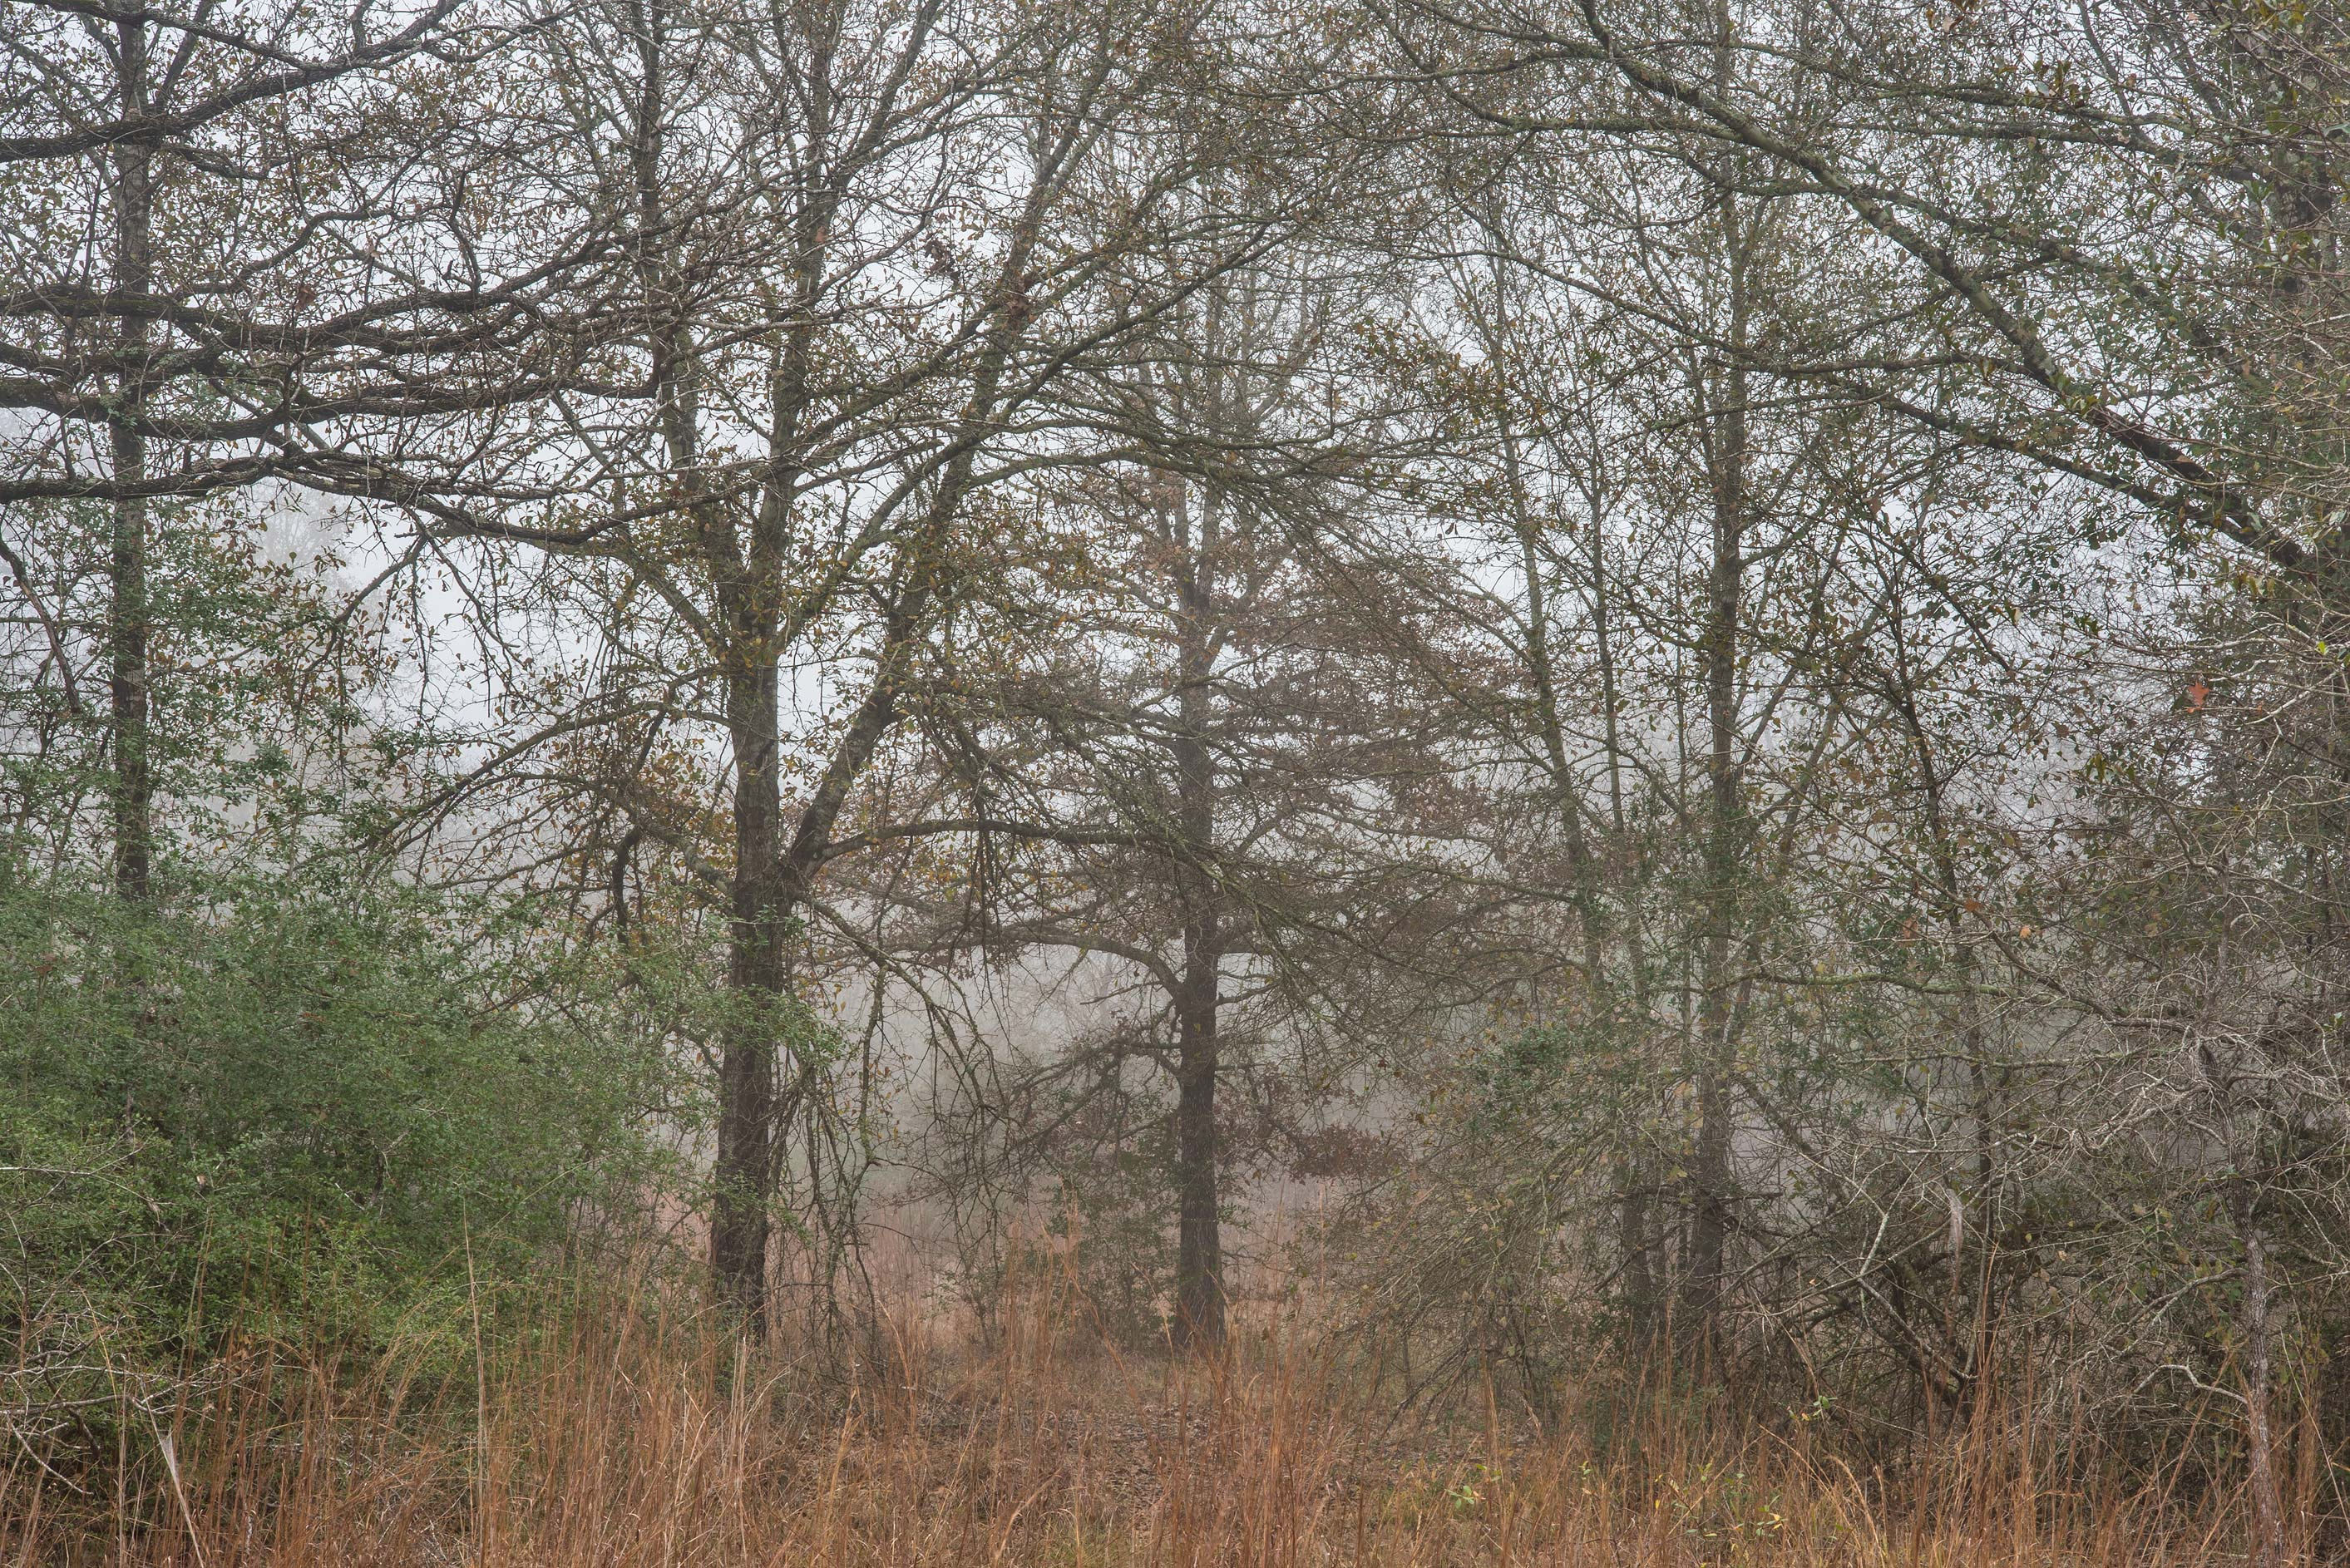 Trees in fog in Lick Creek Park. College Station, Texas